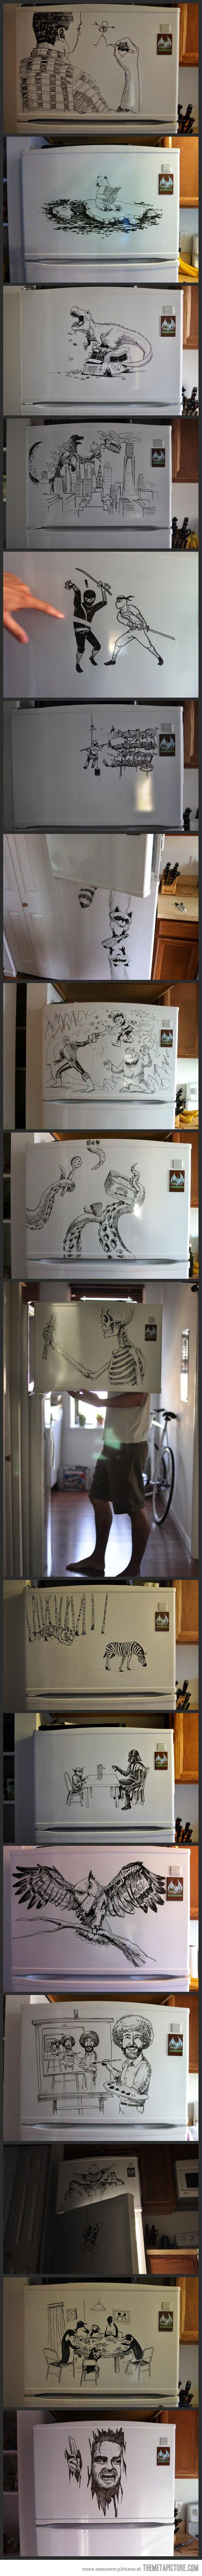 Refrigerator Art...people are so creative. Sometimes stuff like this makes me think the world is a wonderful place to be. People having fun and creating beautiful things. :)